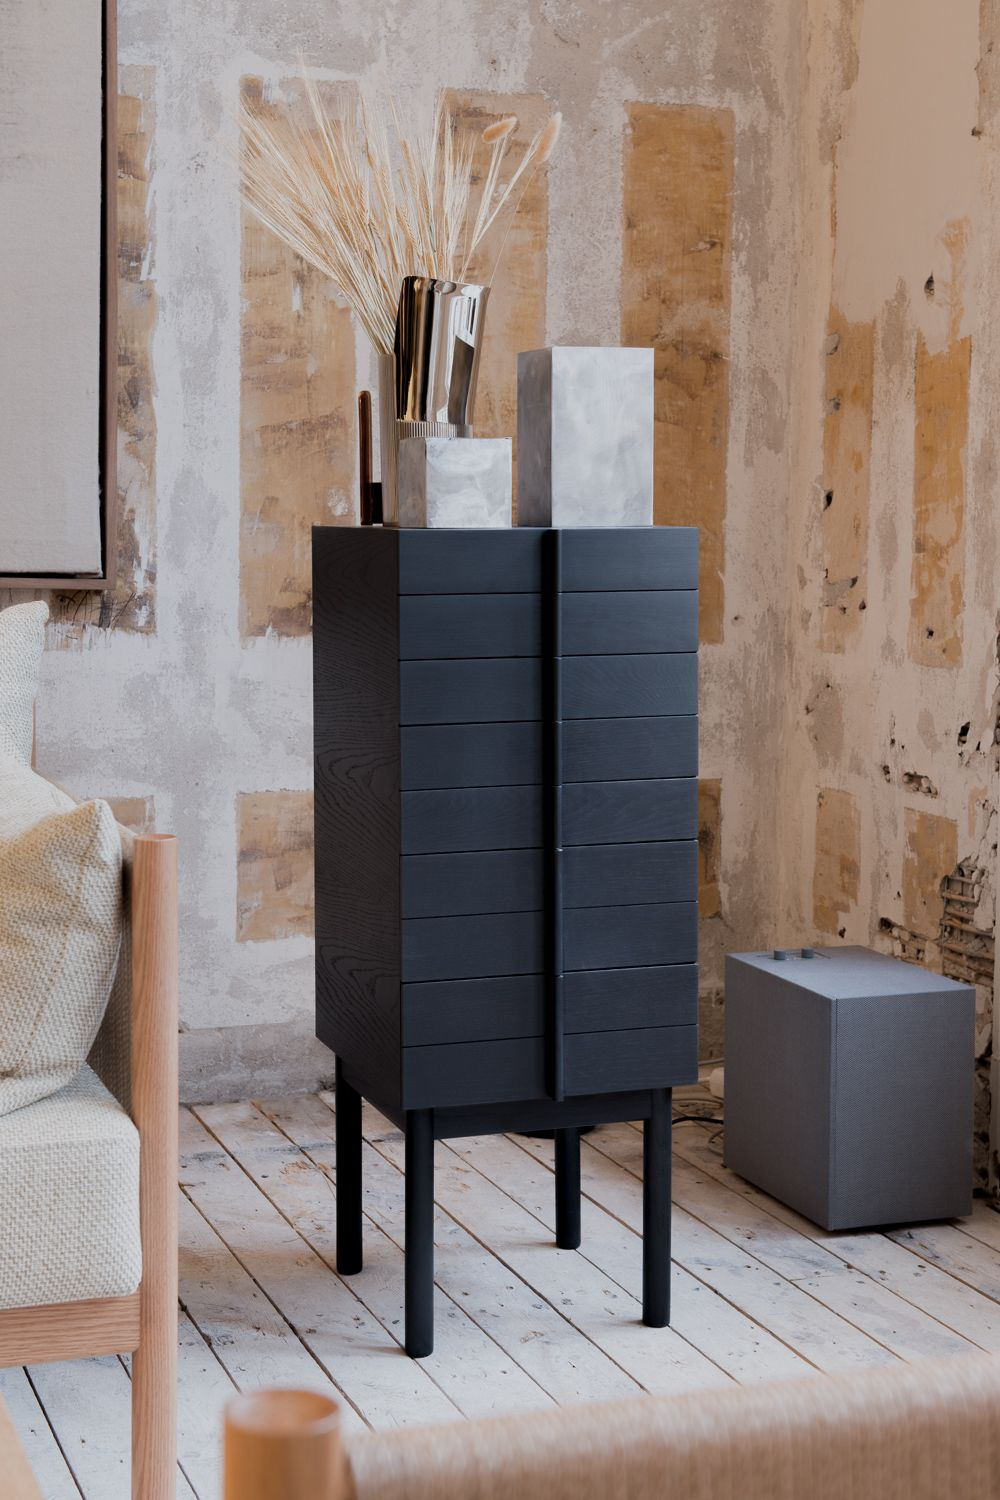 Pin by Dianne Madeleine on interiors   Furniture, Chest of drawers ...